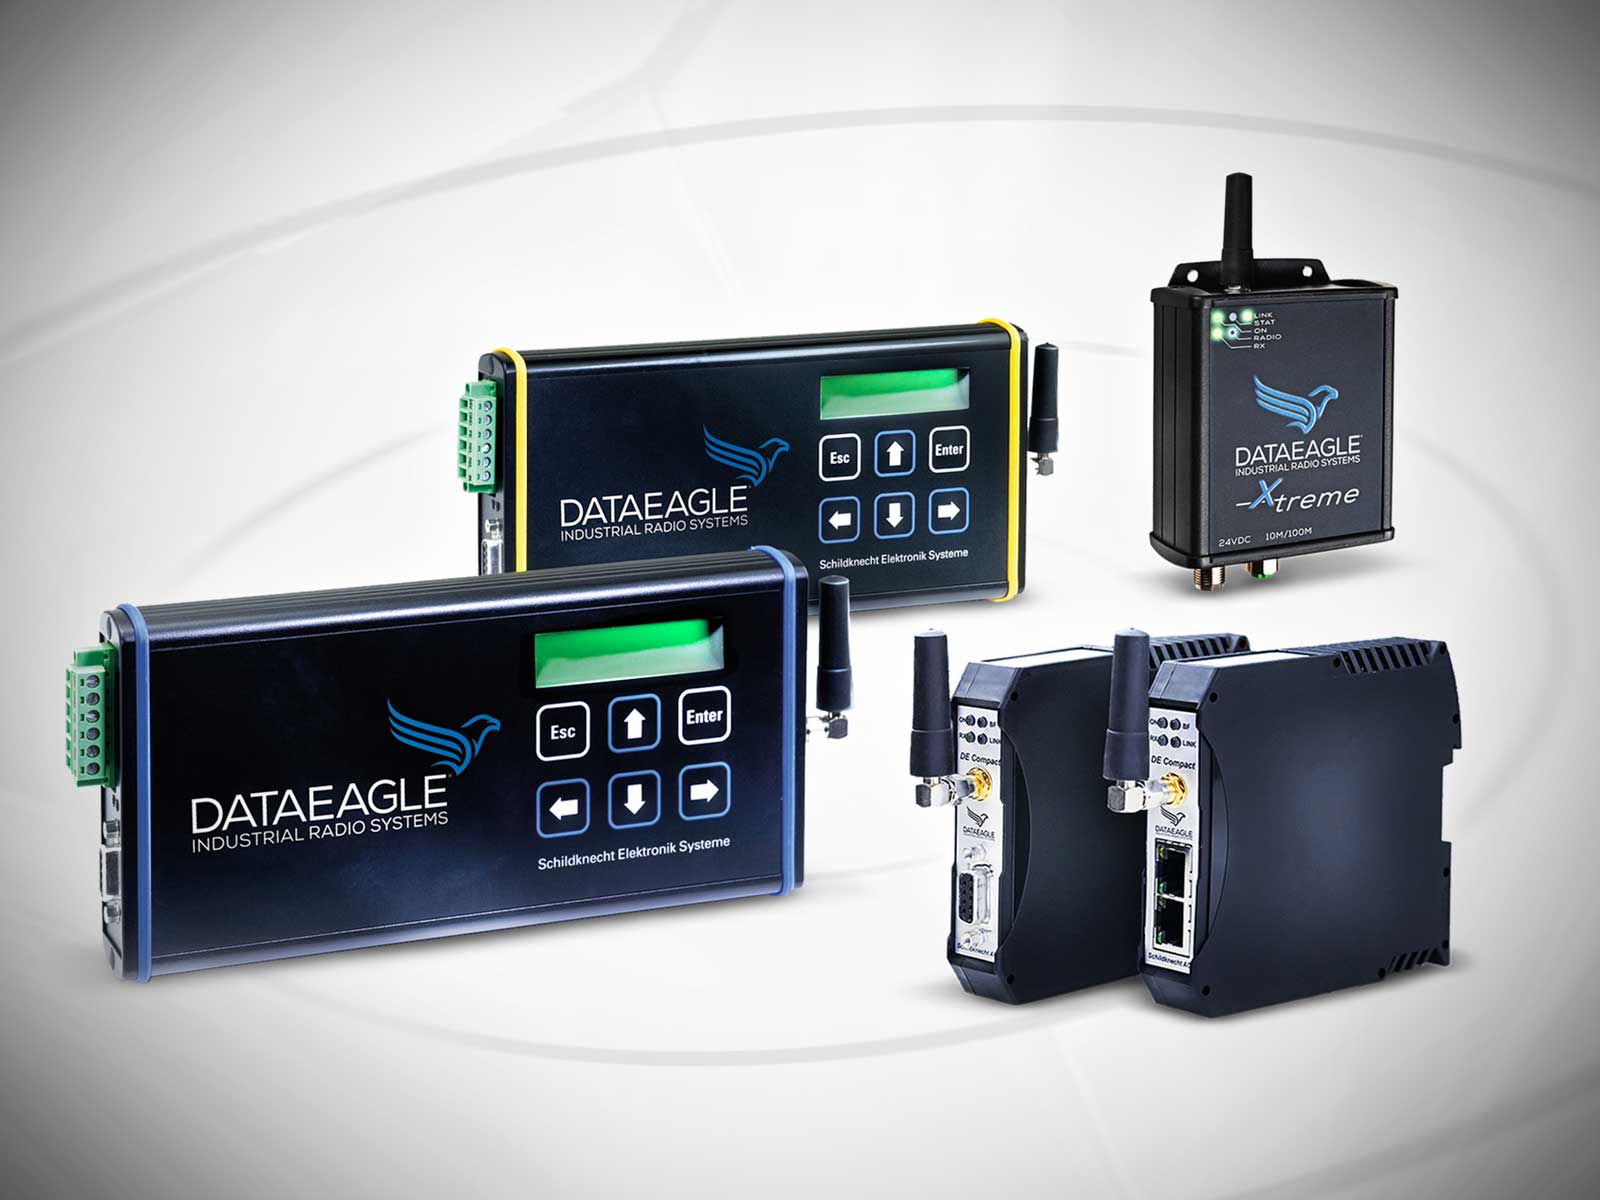 Industrial Wireless ((•)) Datenfunk mit DATAEAGLE